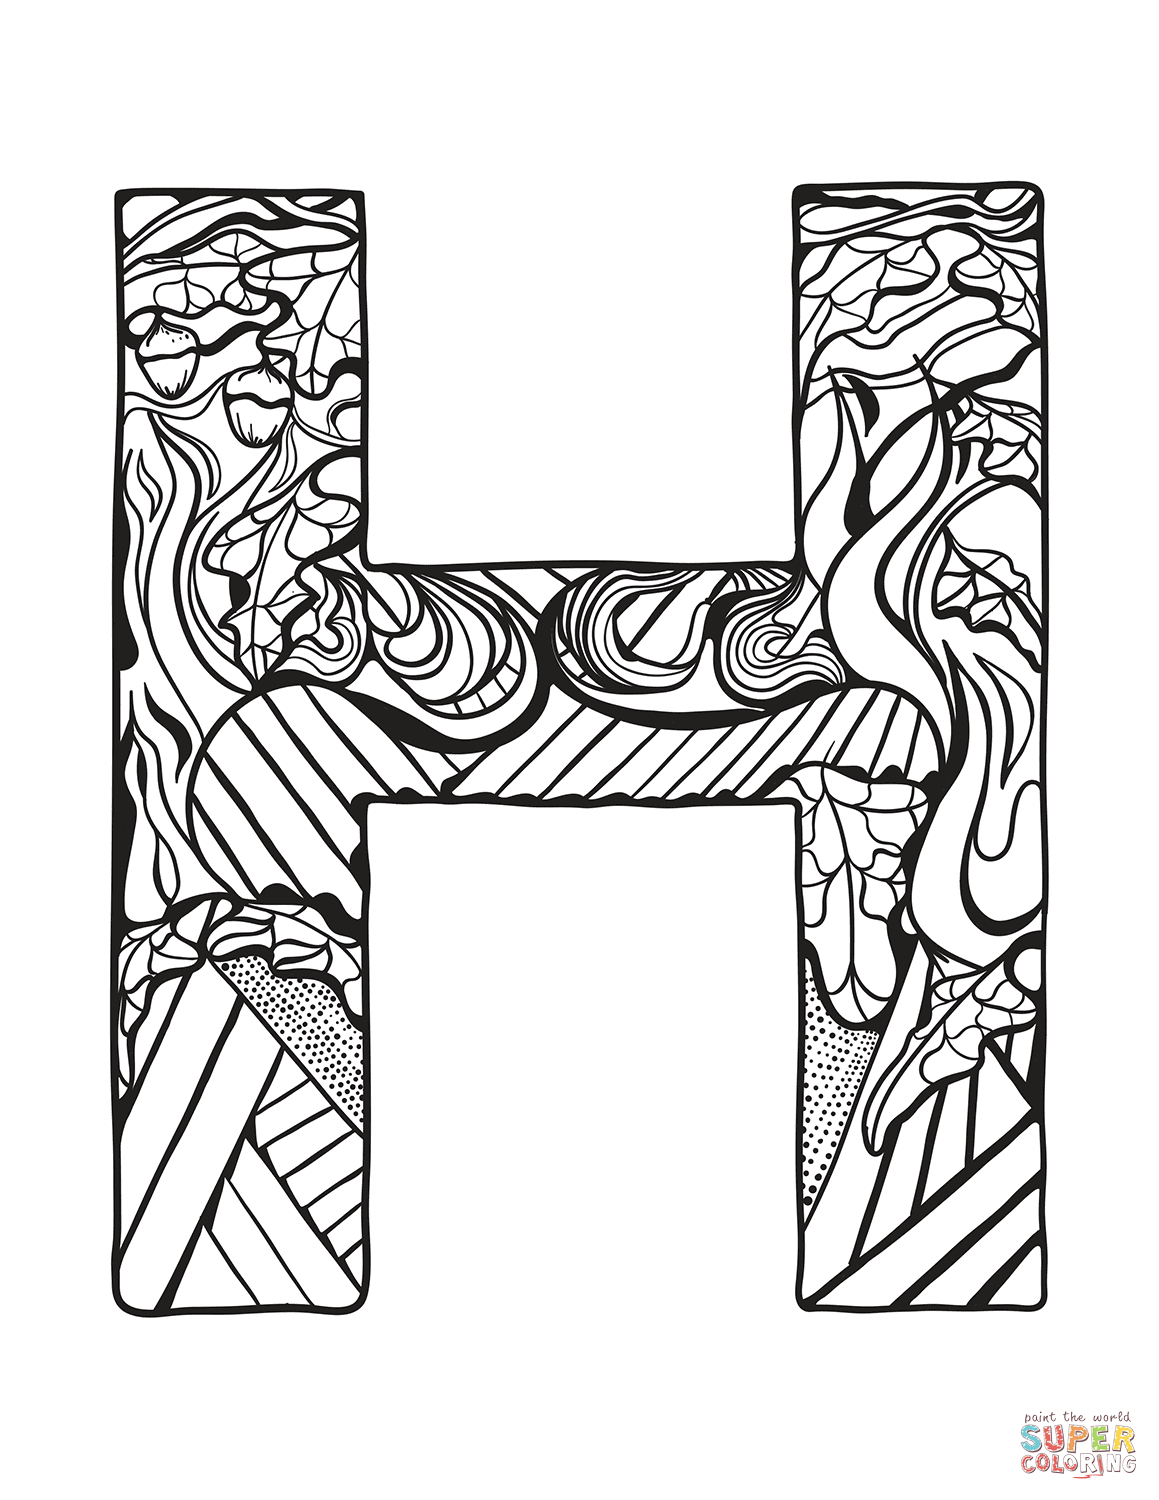 photo about Letter H Printable named Letter H Coloring Internet pages Letter H Zentangle Coloring Website page